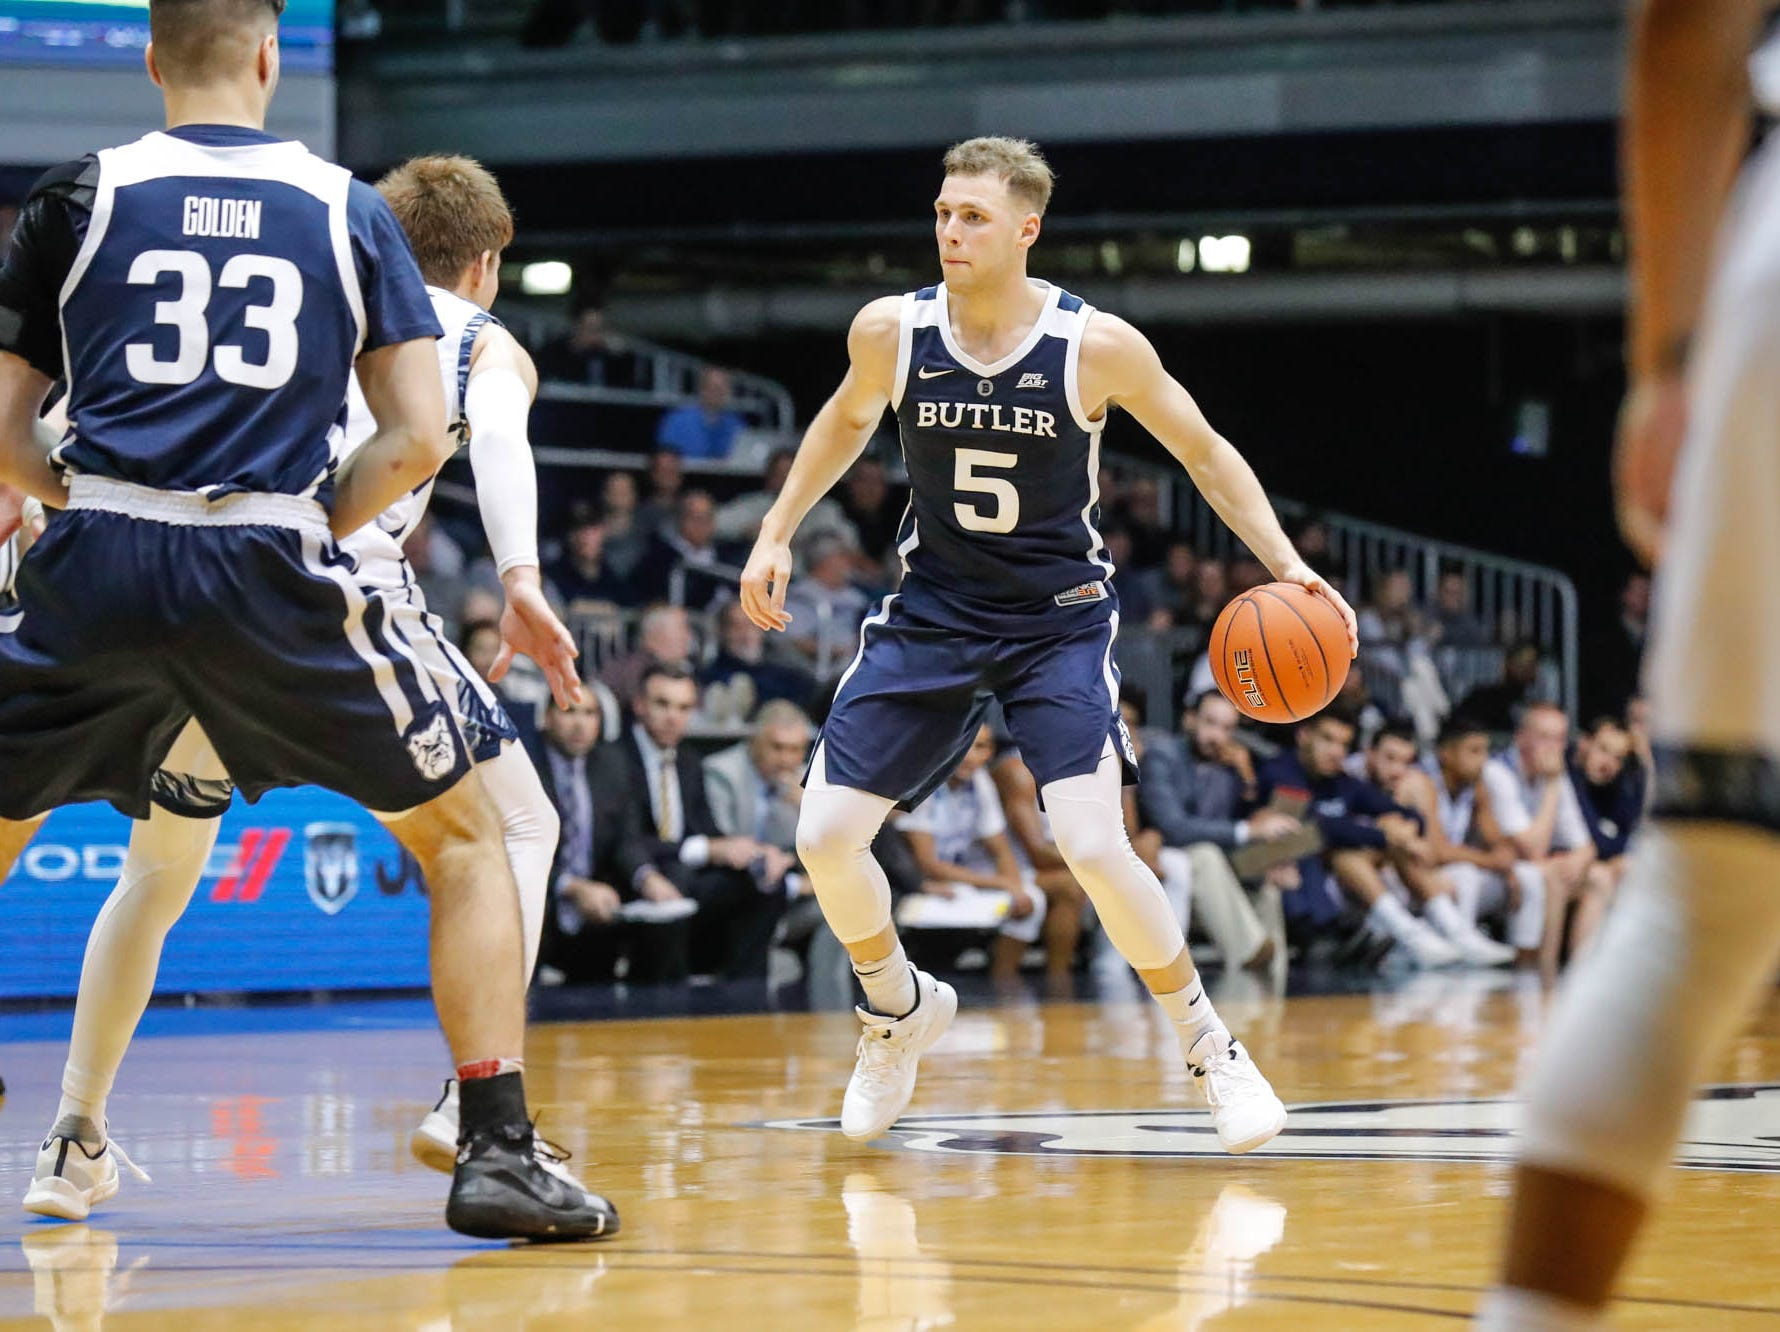 Butler University's guard Paul Jorgensen (5) runs a play  during a game between Butler University and UC Irvine, at Hinkle Fieldhouse on Friday, Dec. 21, 2018.